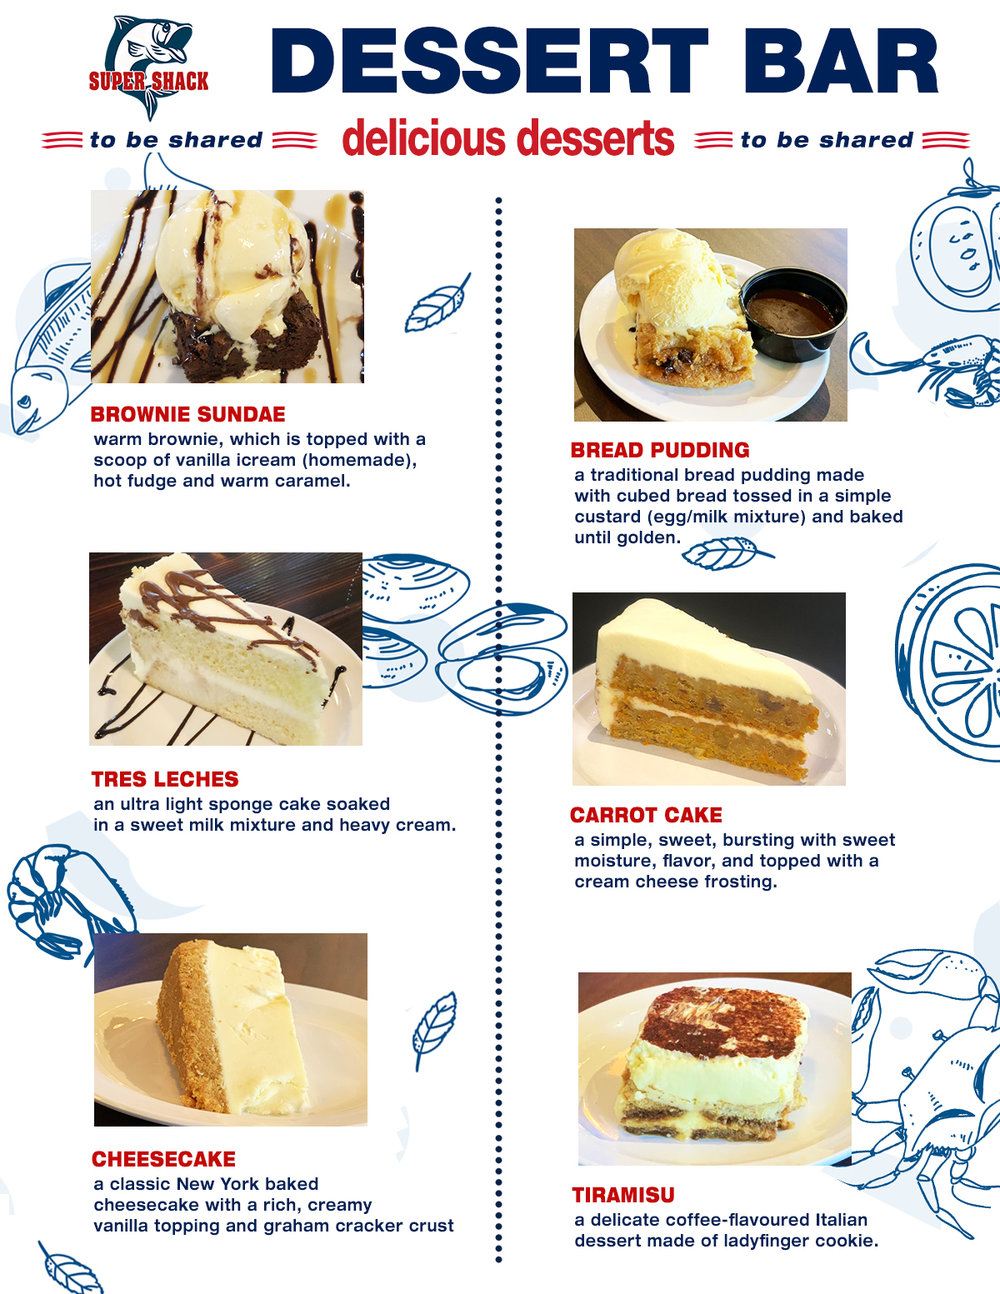 dessert-menu-supershack.jpg